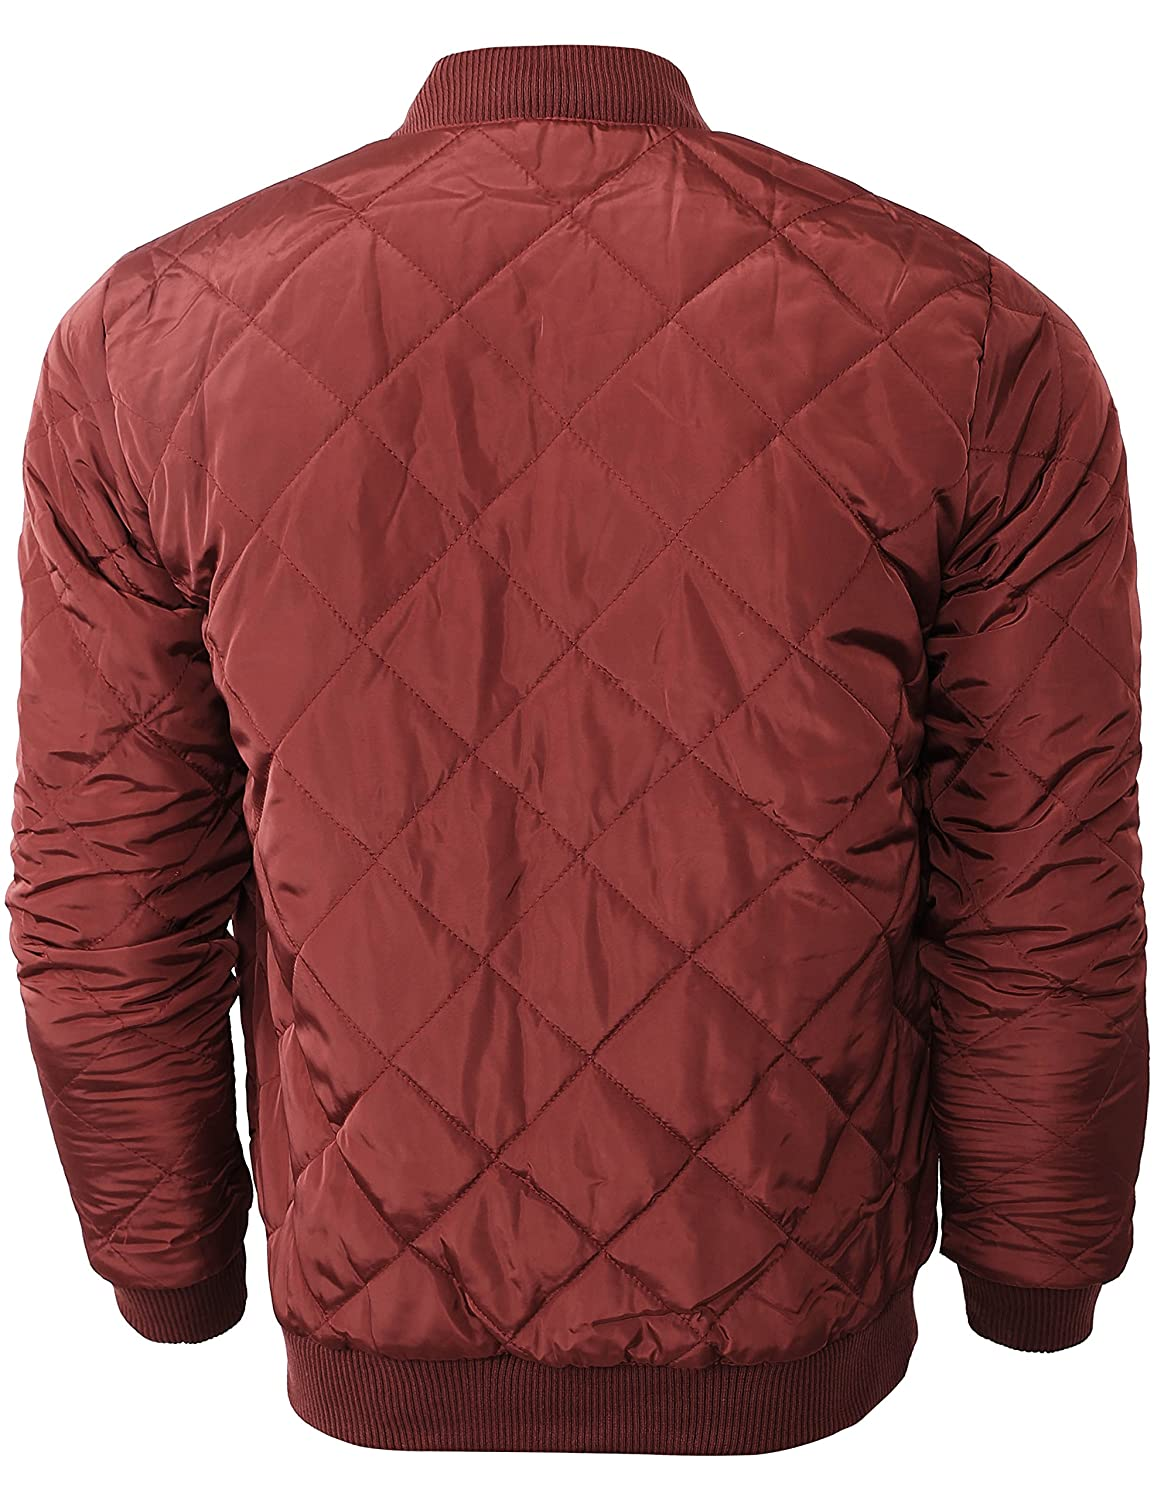 Hat and Beyond Mens Quilted Padded Bomber Jackets Lightweight Casual Zip Up Insulated Puffer